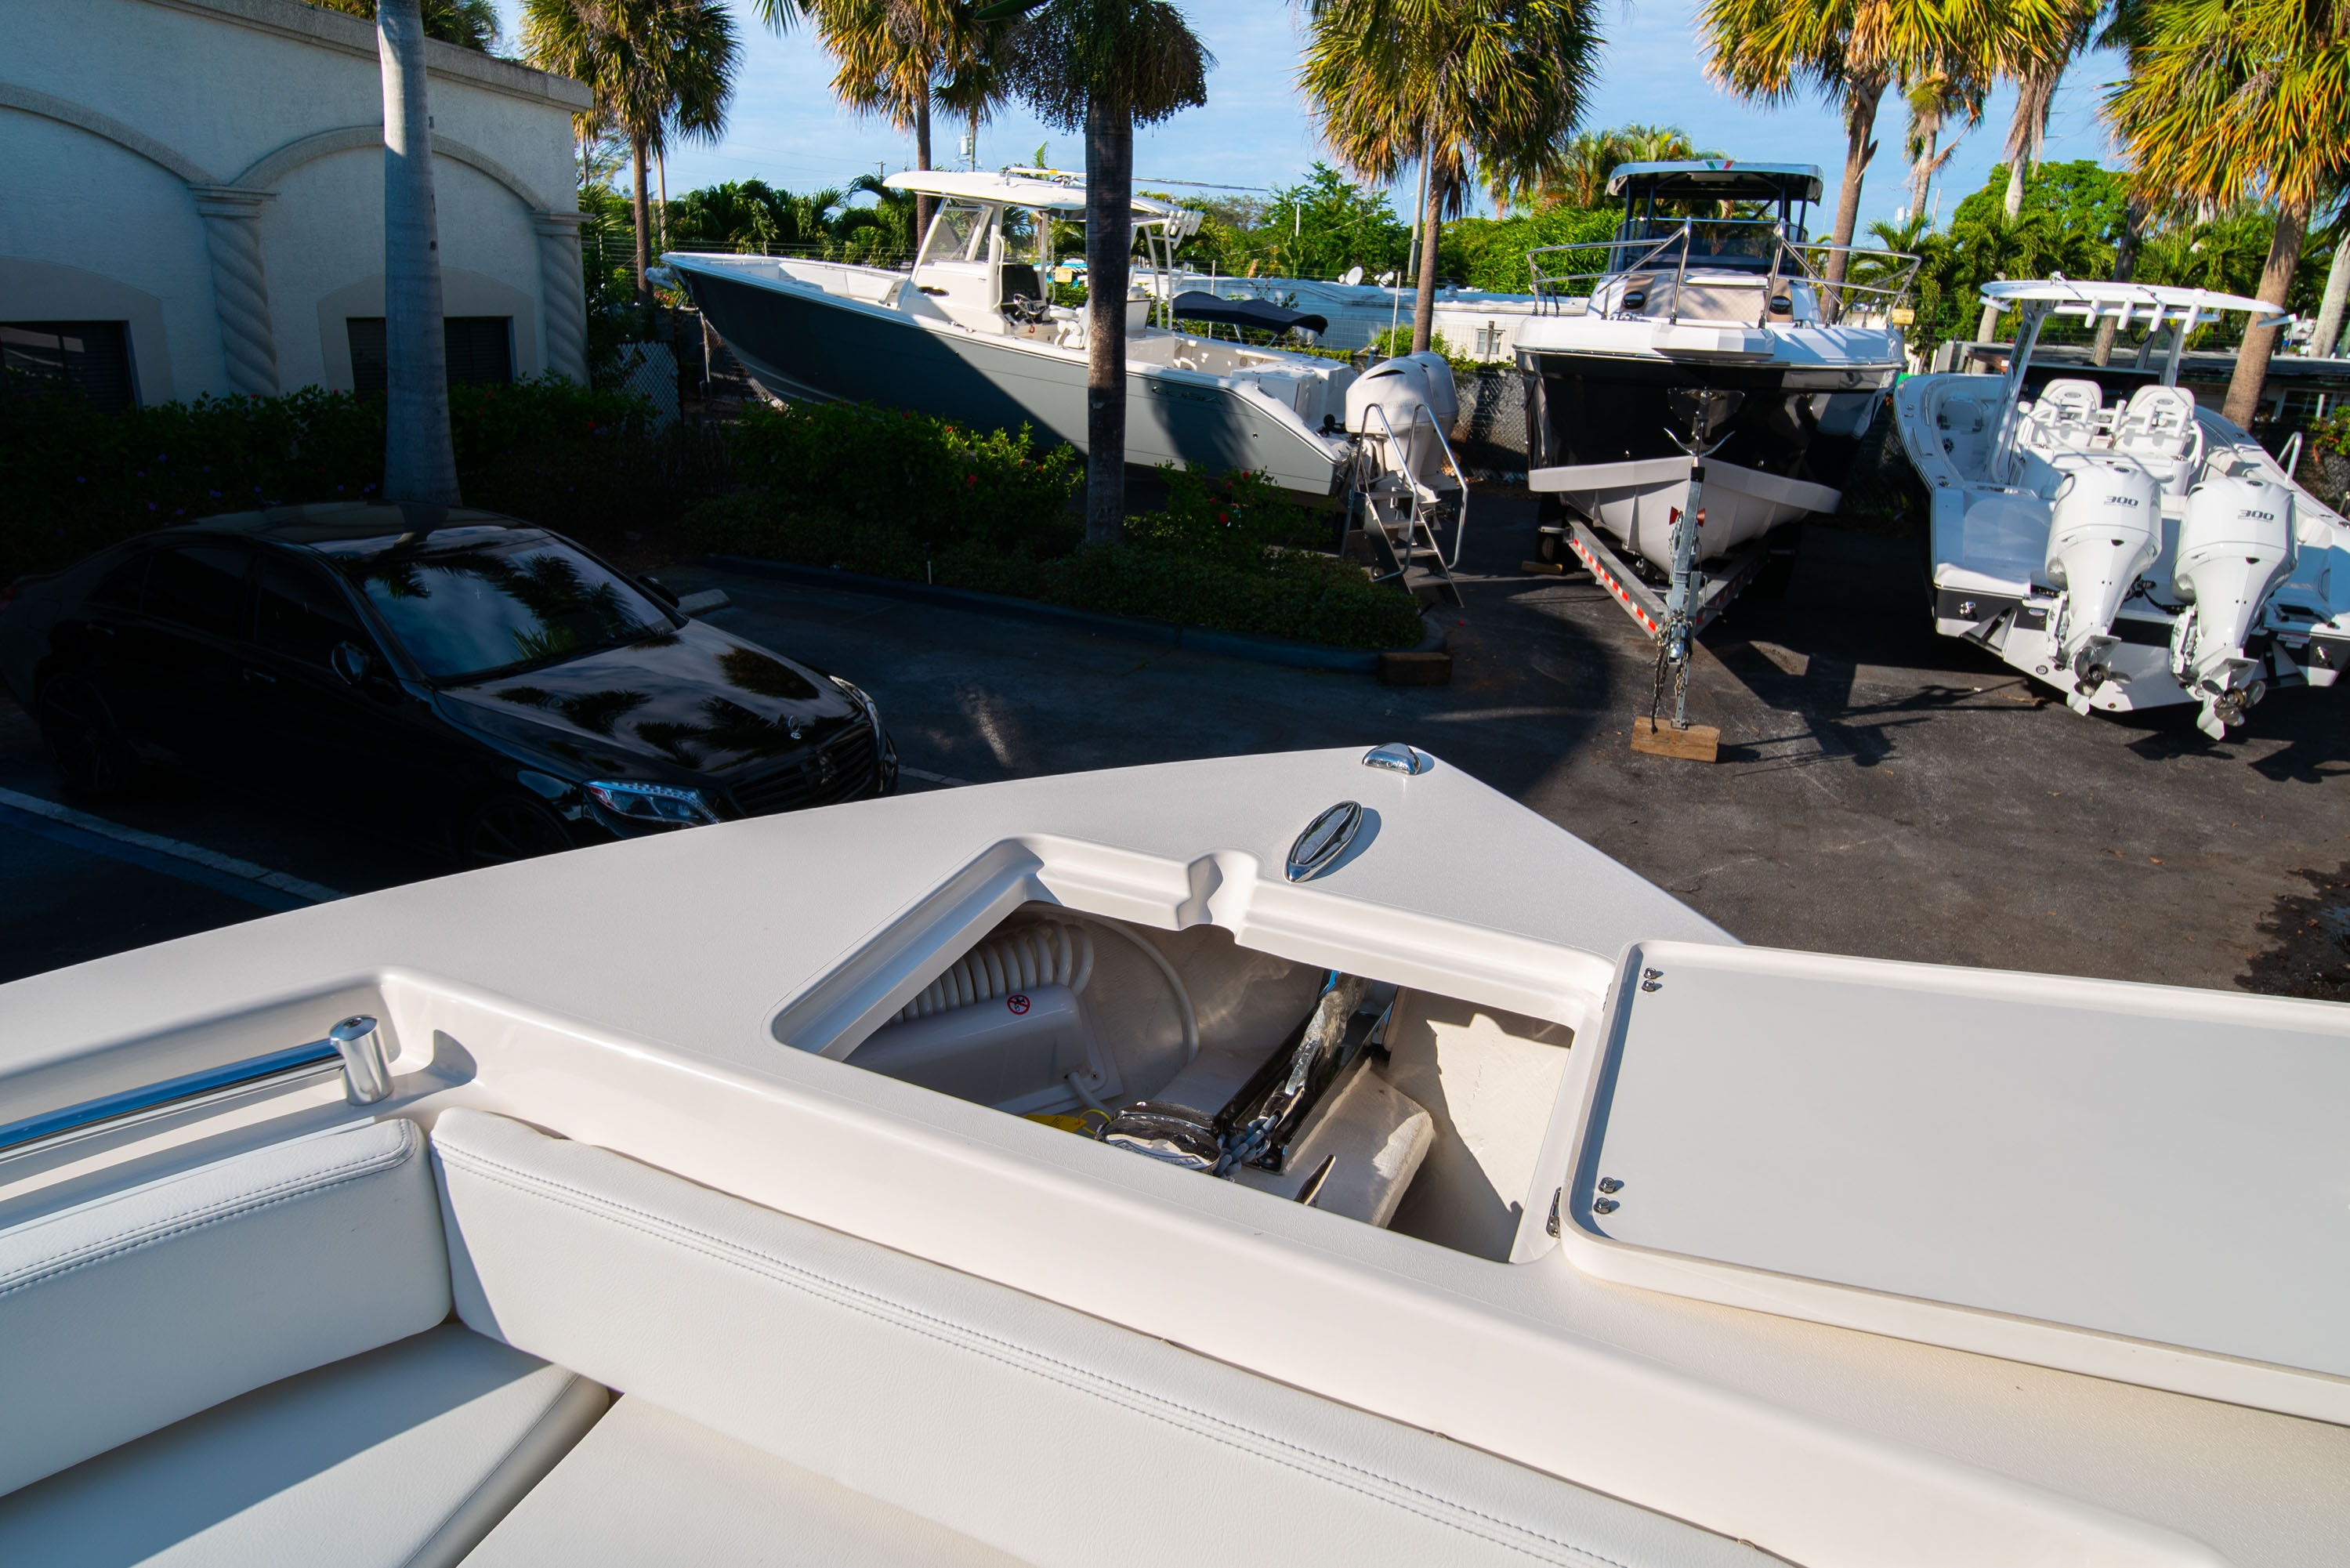 Thumbnail 37 for New 2020 Cobia 220 CC boat for sale in West Palm Beach, FL